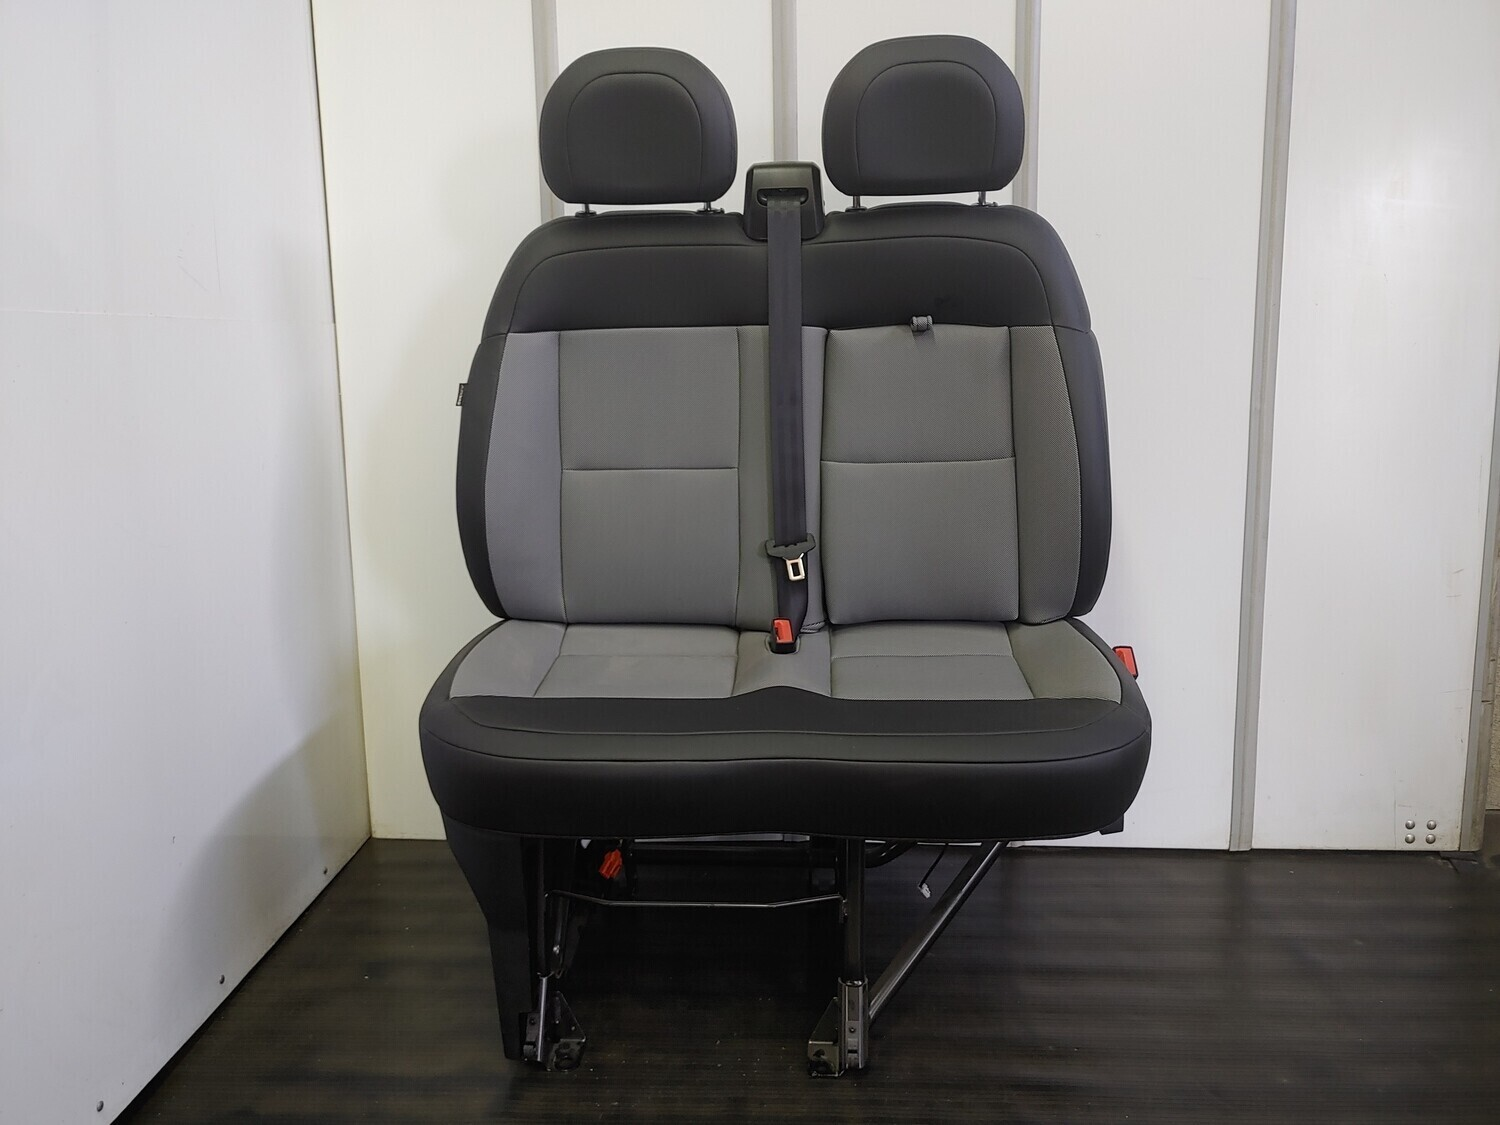 2 Passenger Ram ProMaster Front Bench Seat W/ AirBag - Leather.